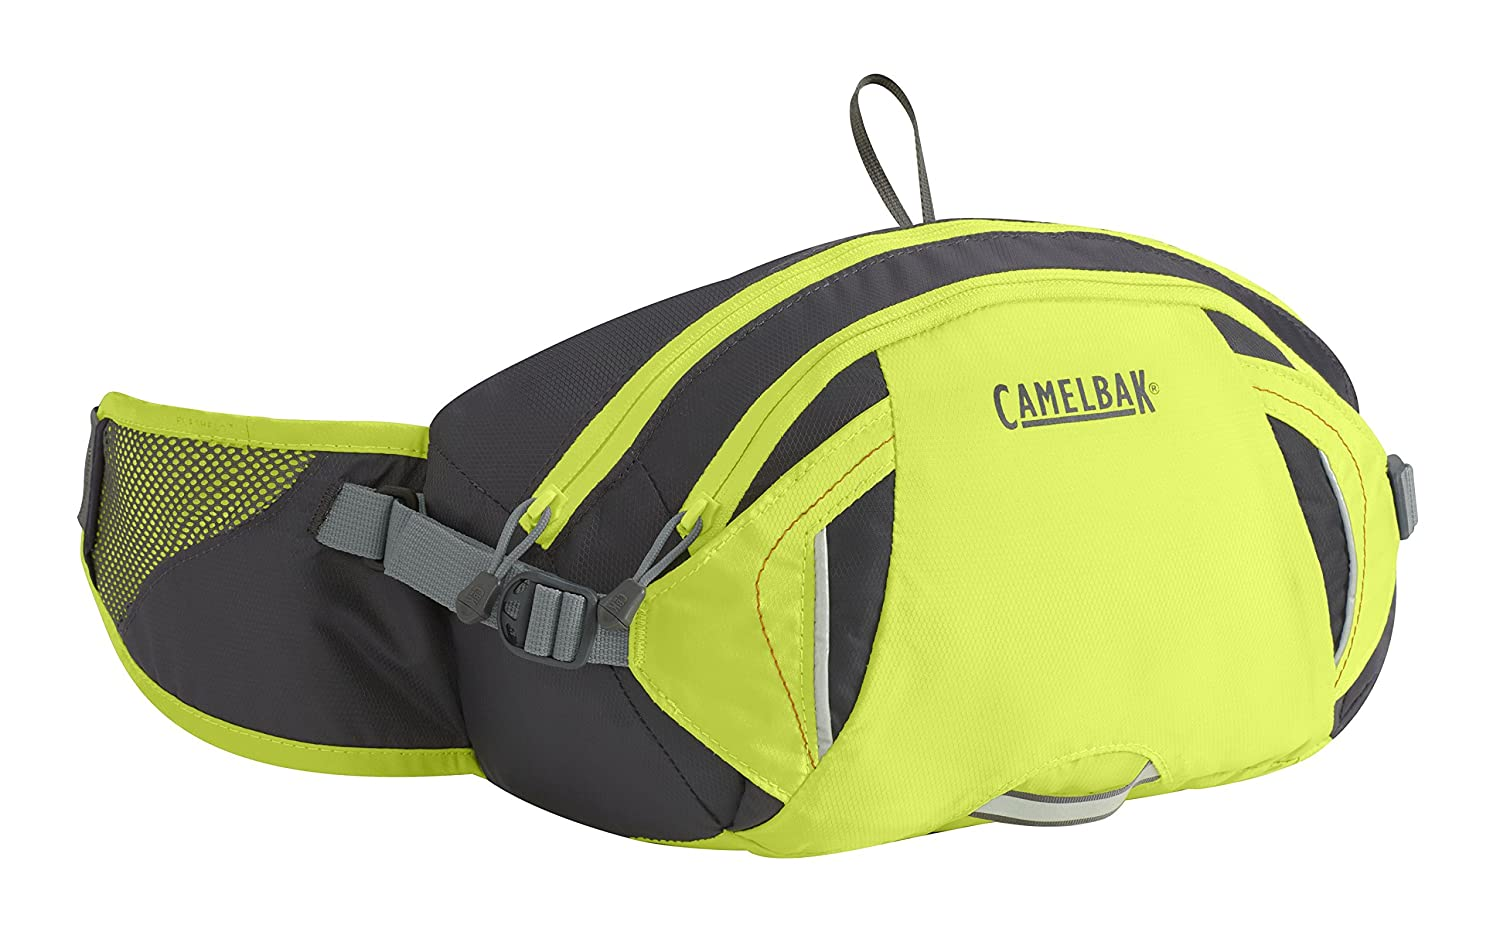 Camelbak Flashflo Drink Belt FF62364553